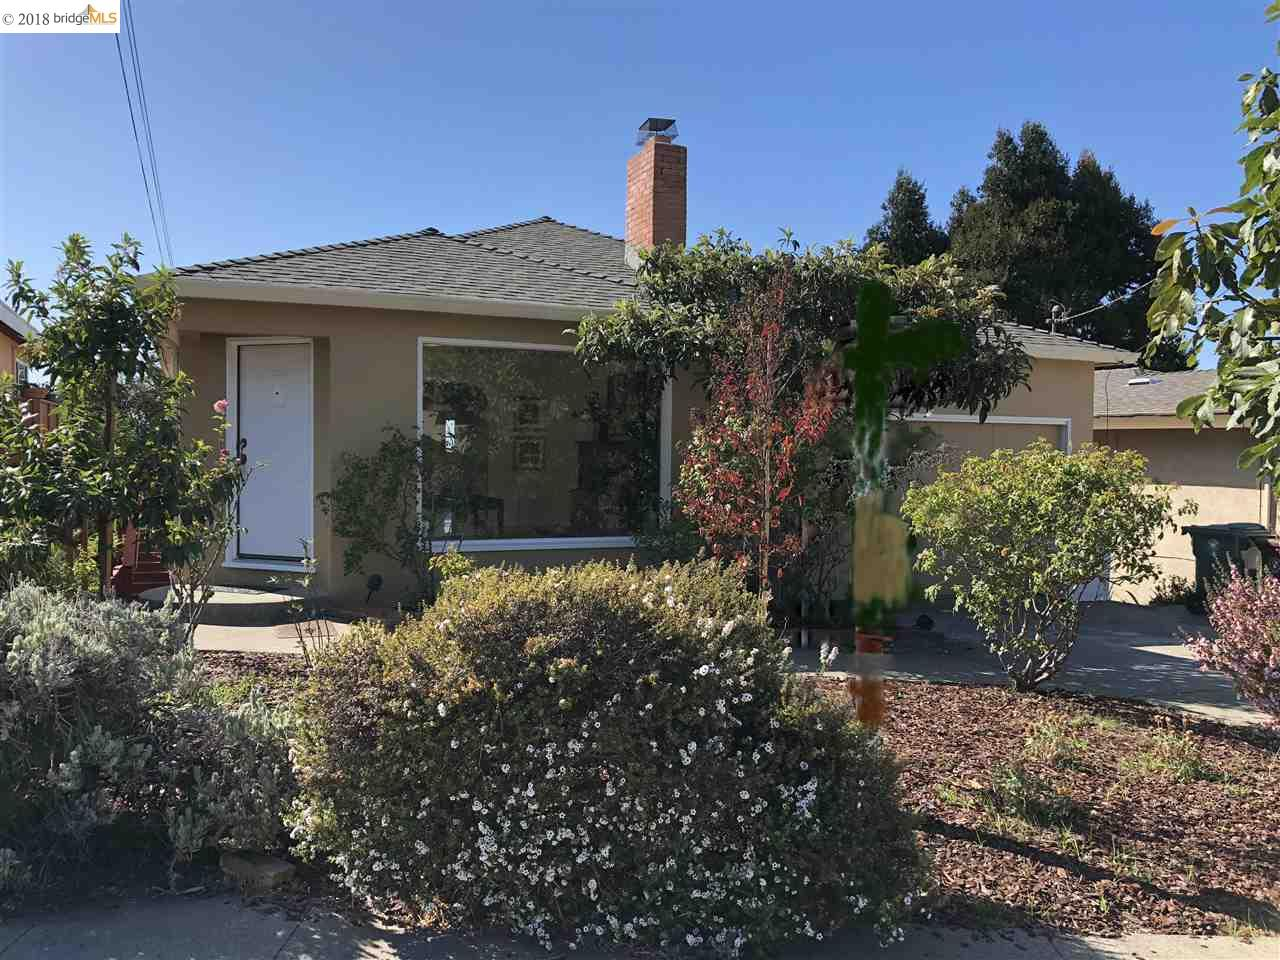 709 COURTLAND AVE, RICHMOND, CA 94805